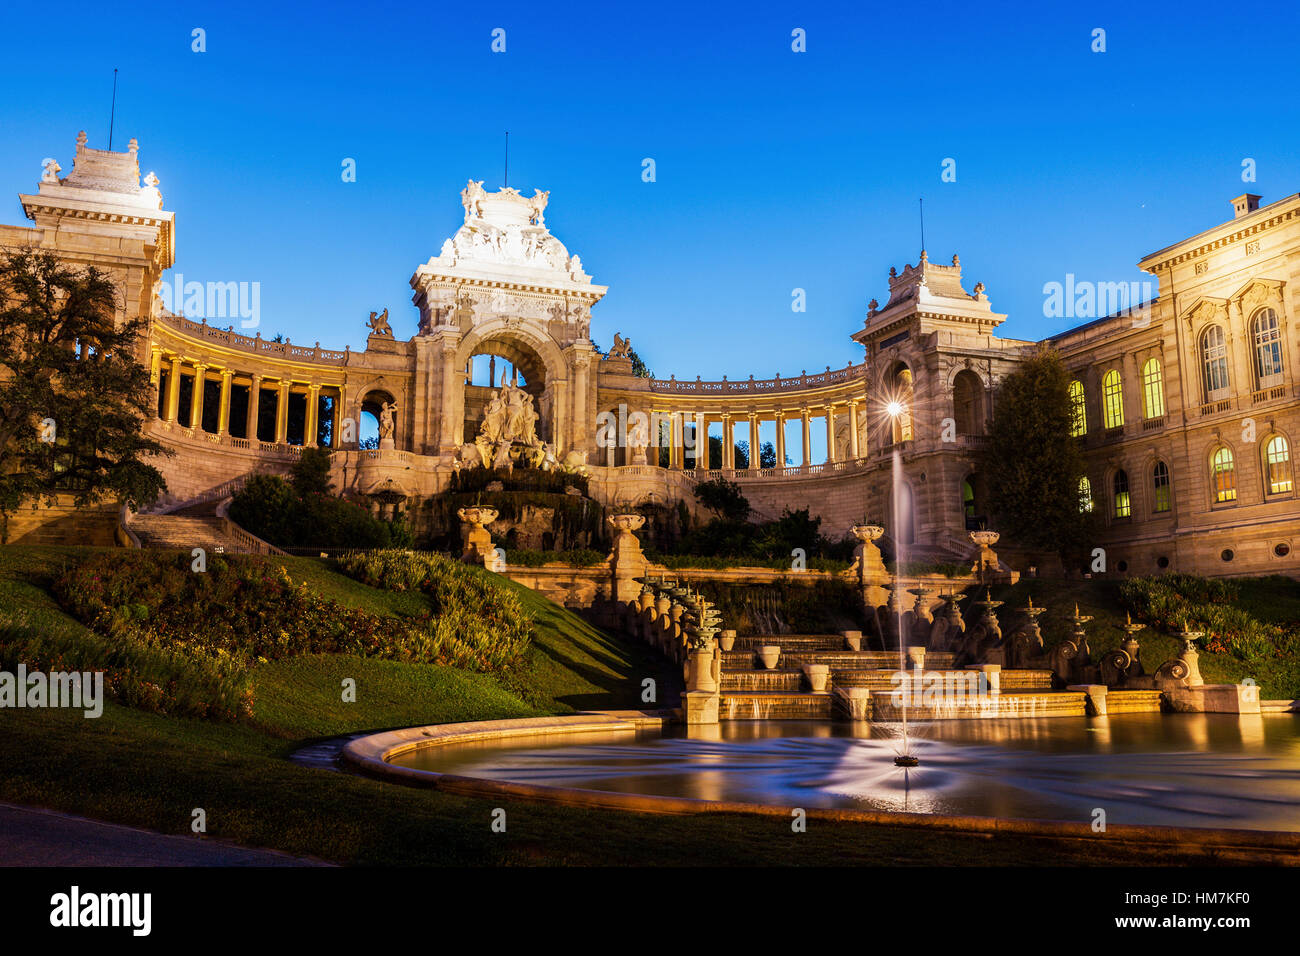 France, Provence-Alpes-Cote d'Azur, Marseille, Palais Longchamp Monument with adjoining fountain - Stock Image